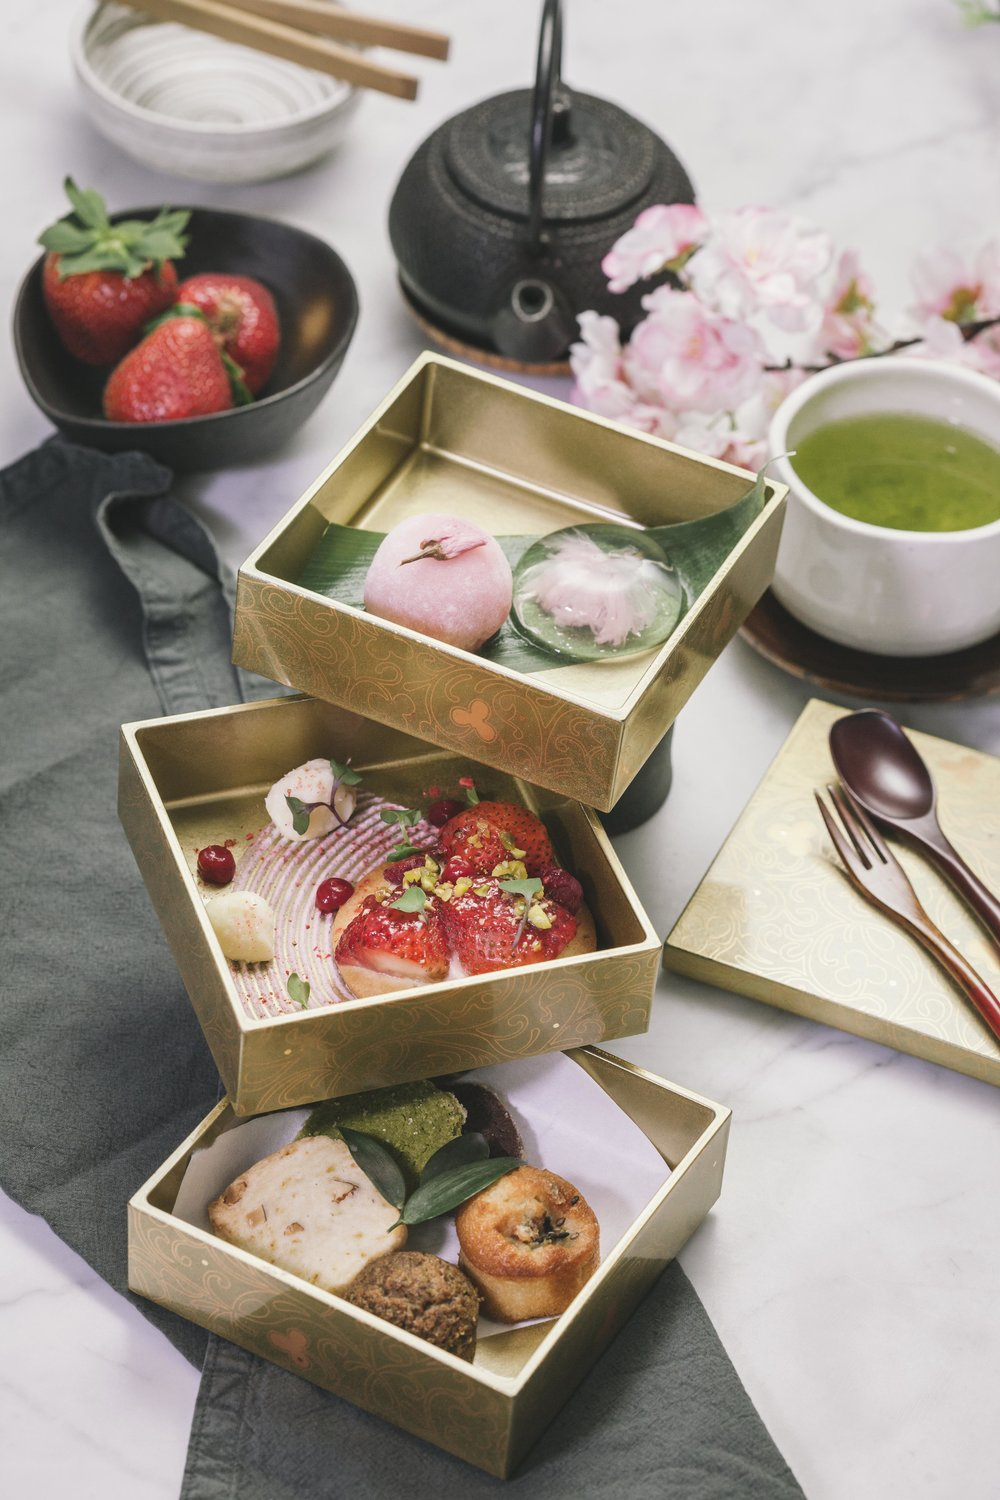 Jewelry BOX - Chef's dessert selection by Pastry Chef Norie Uematsu.served in OJu box, changes seasonally